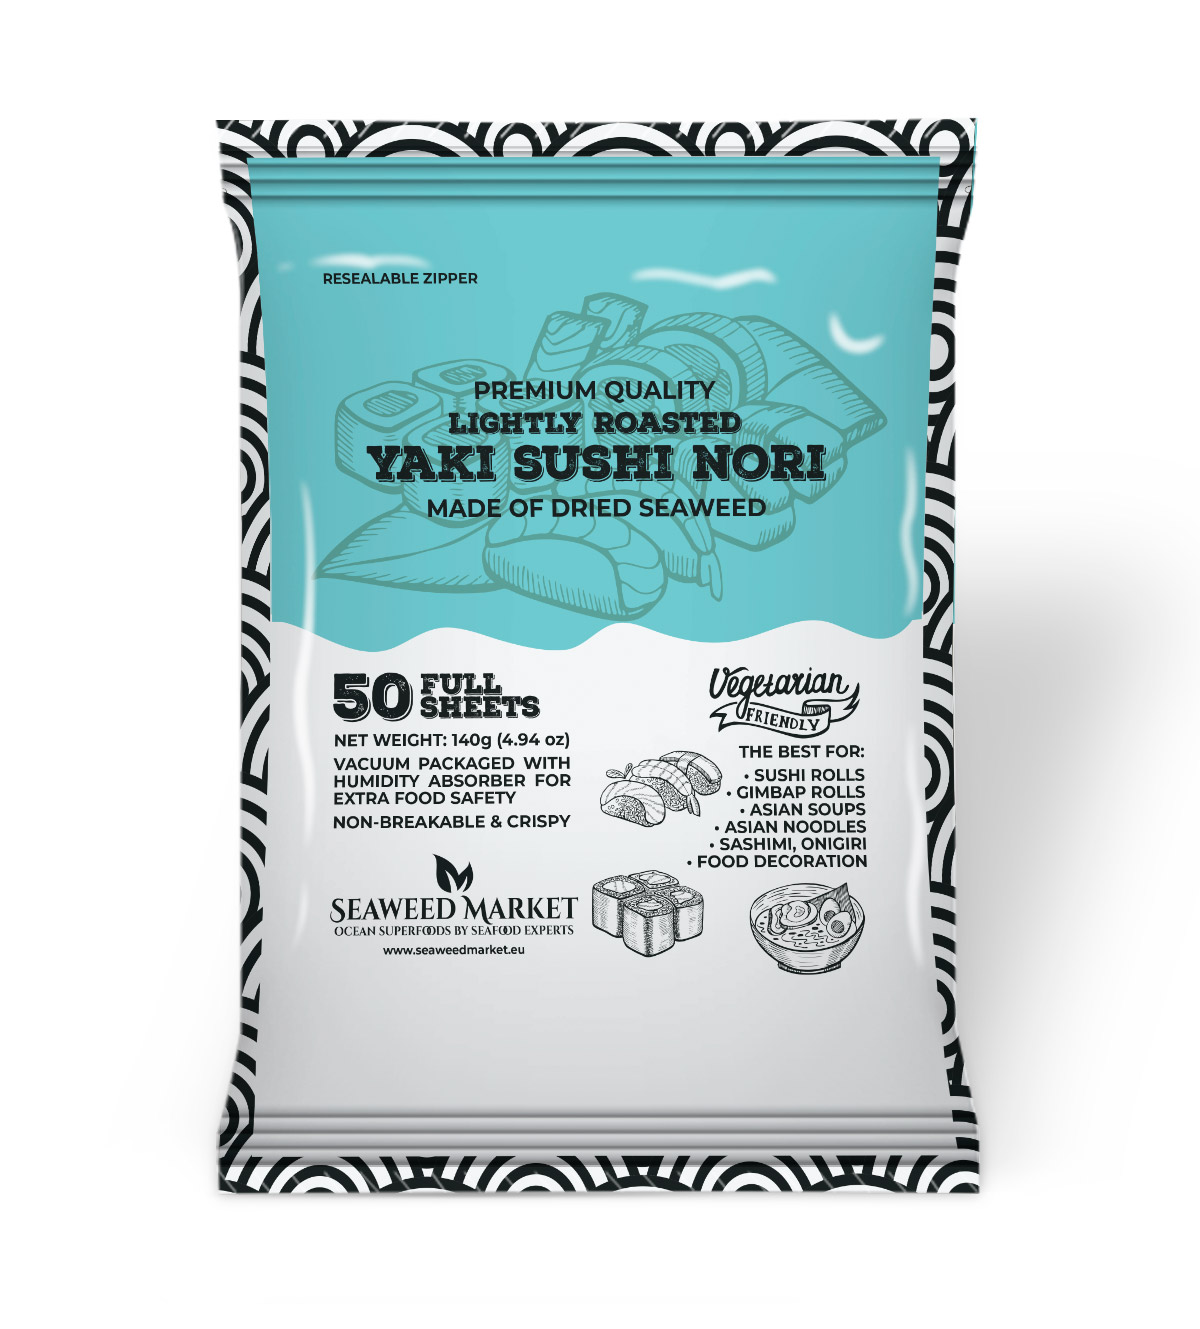 50 Full Sheets Nori Seaweed Market - European supplier